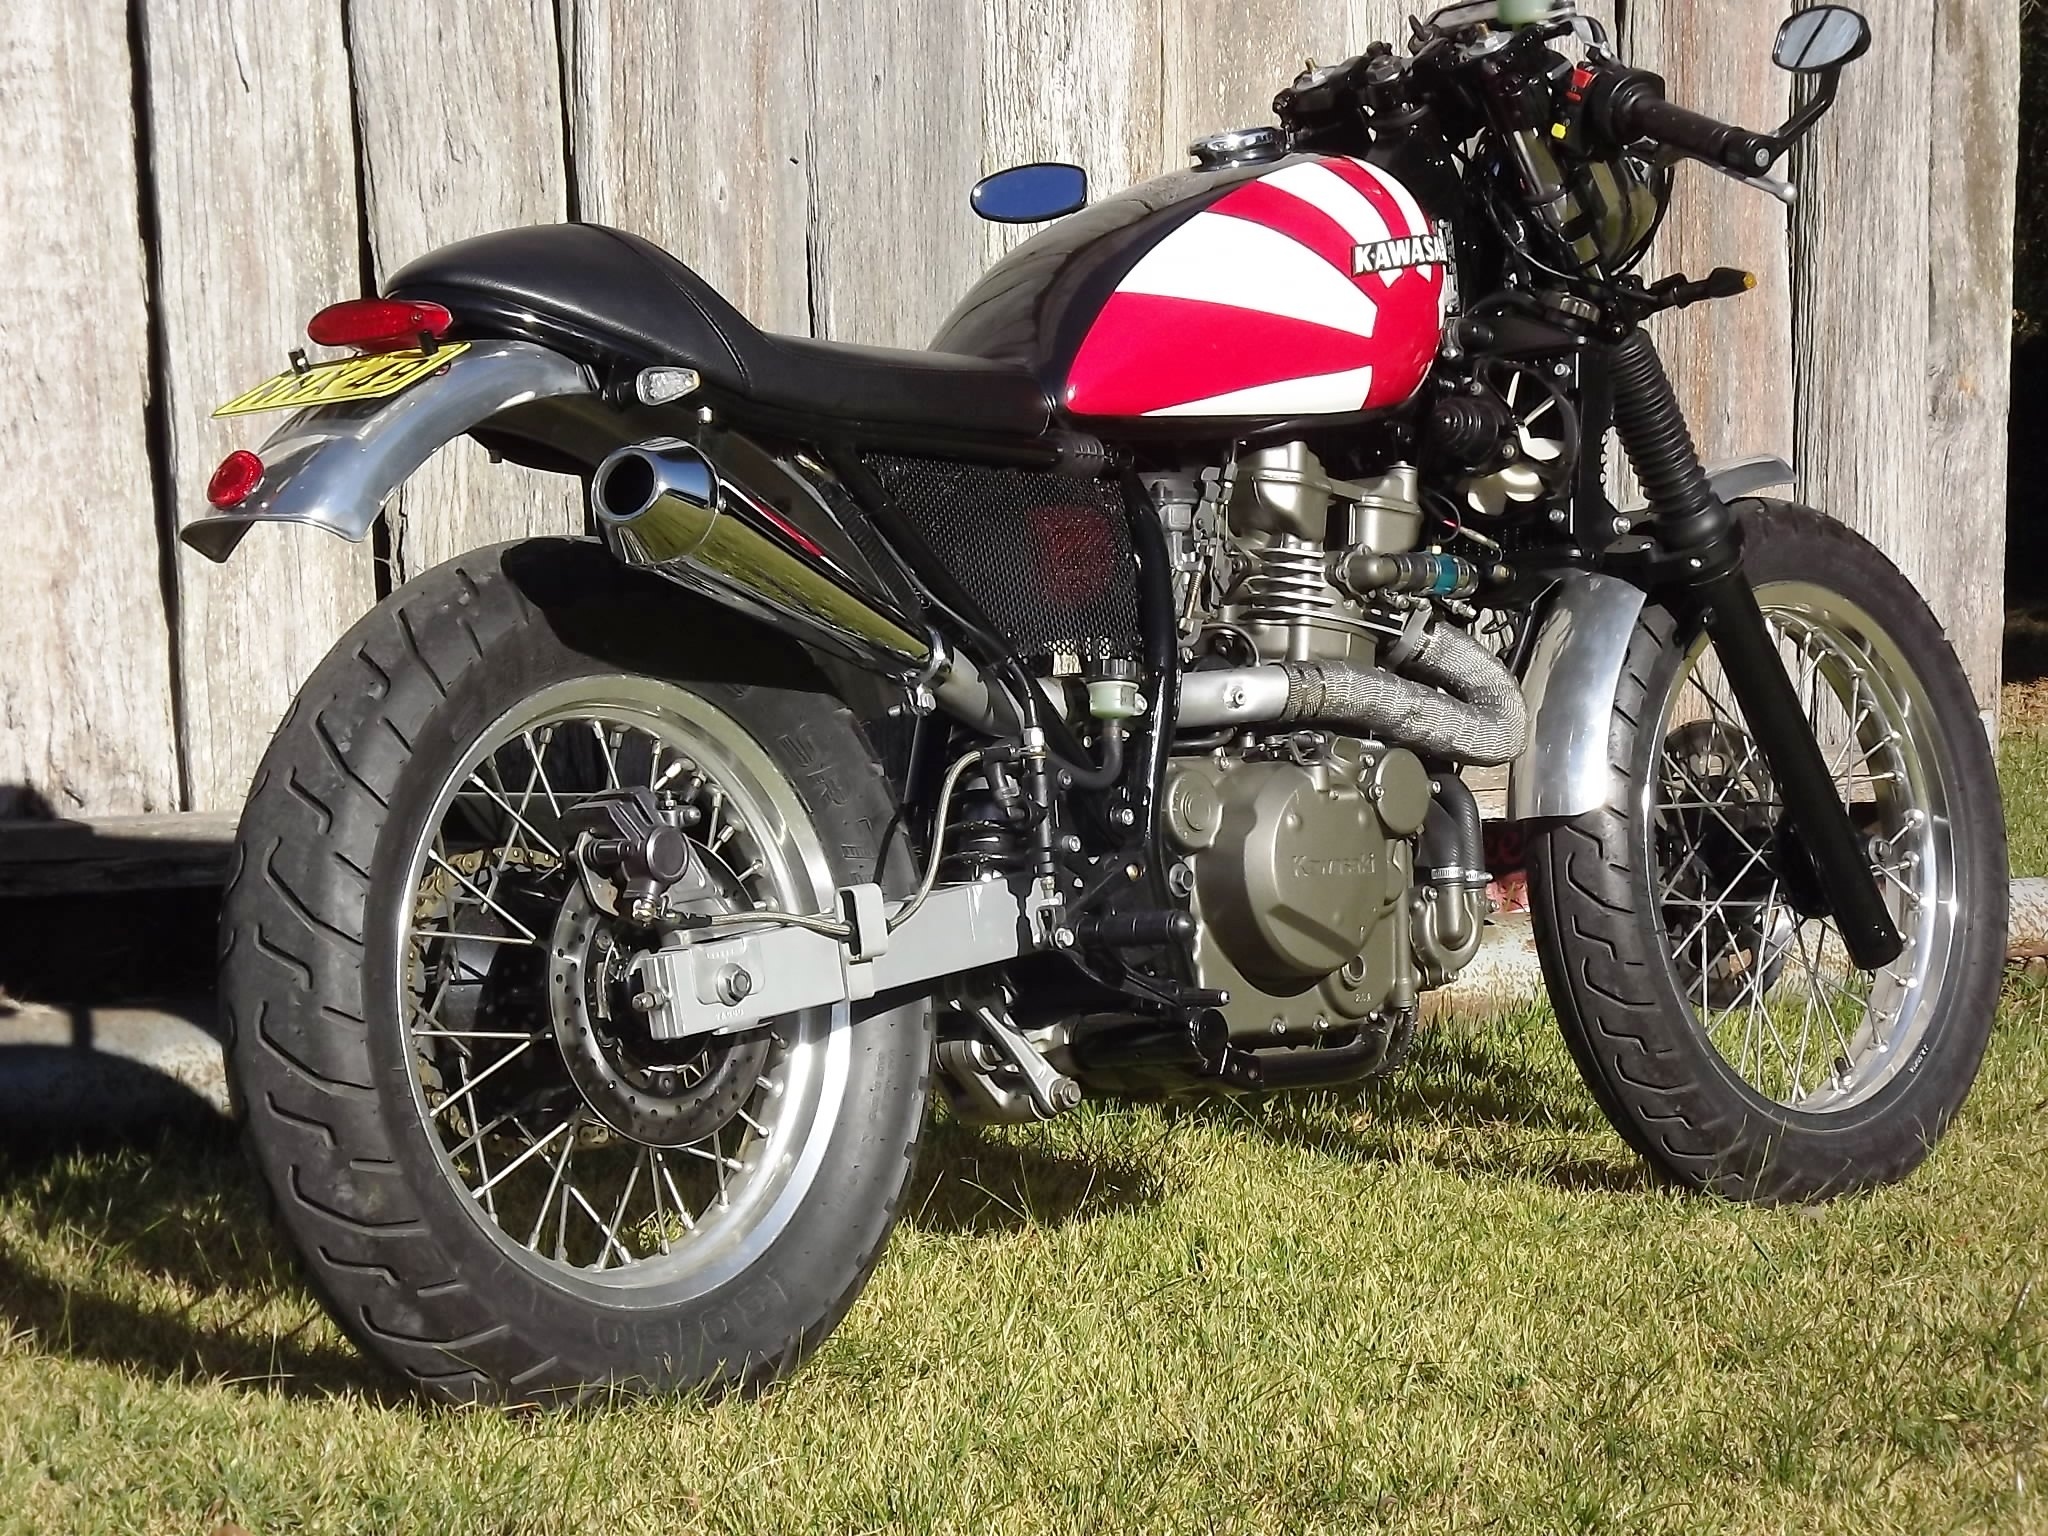 Name Michaels KLR650 Cafe Racer 6 Views 20974